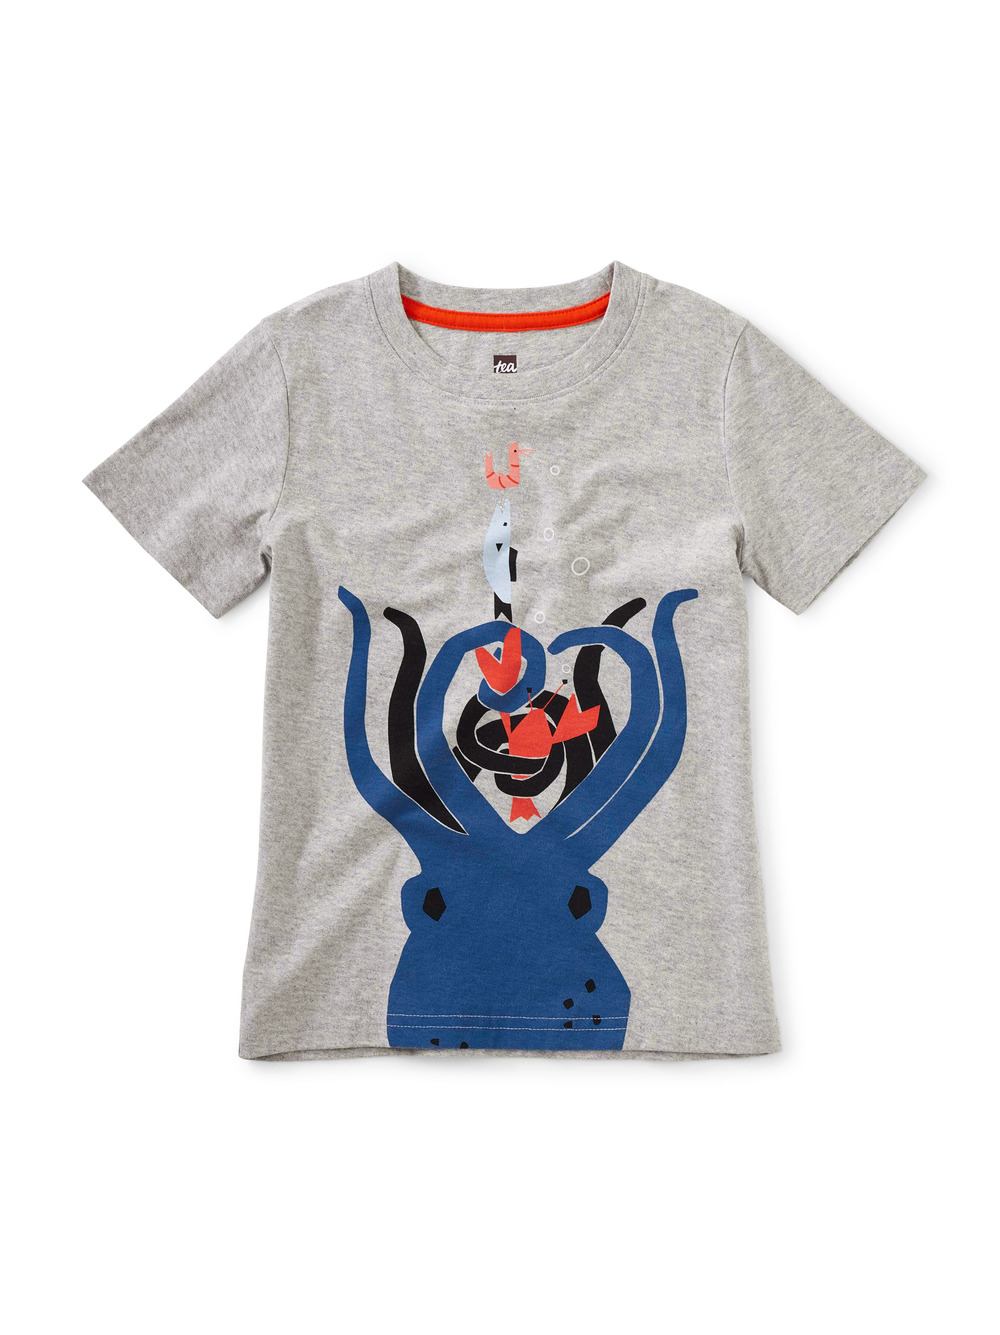 8 Arms to Hold You Graphic Tee